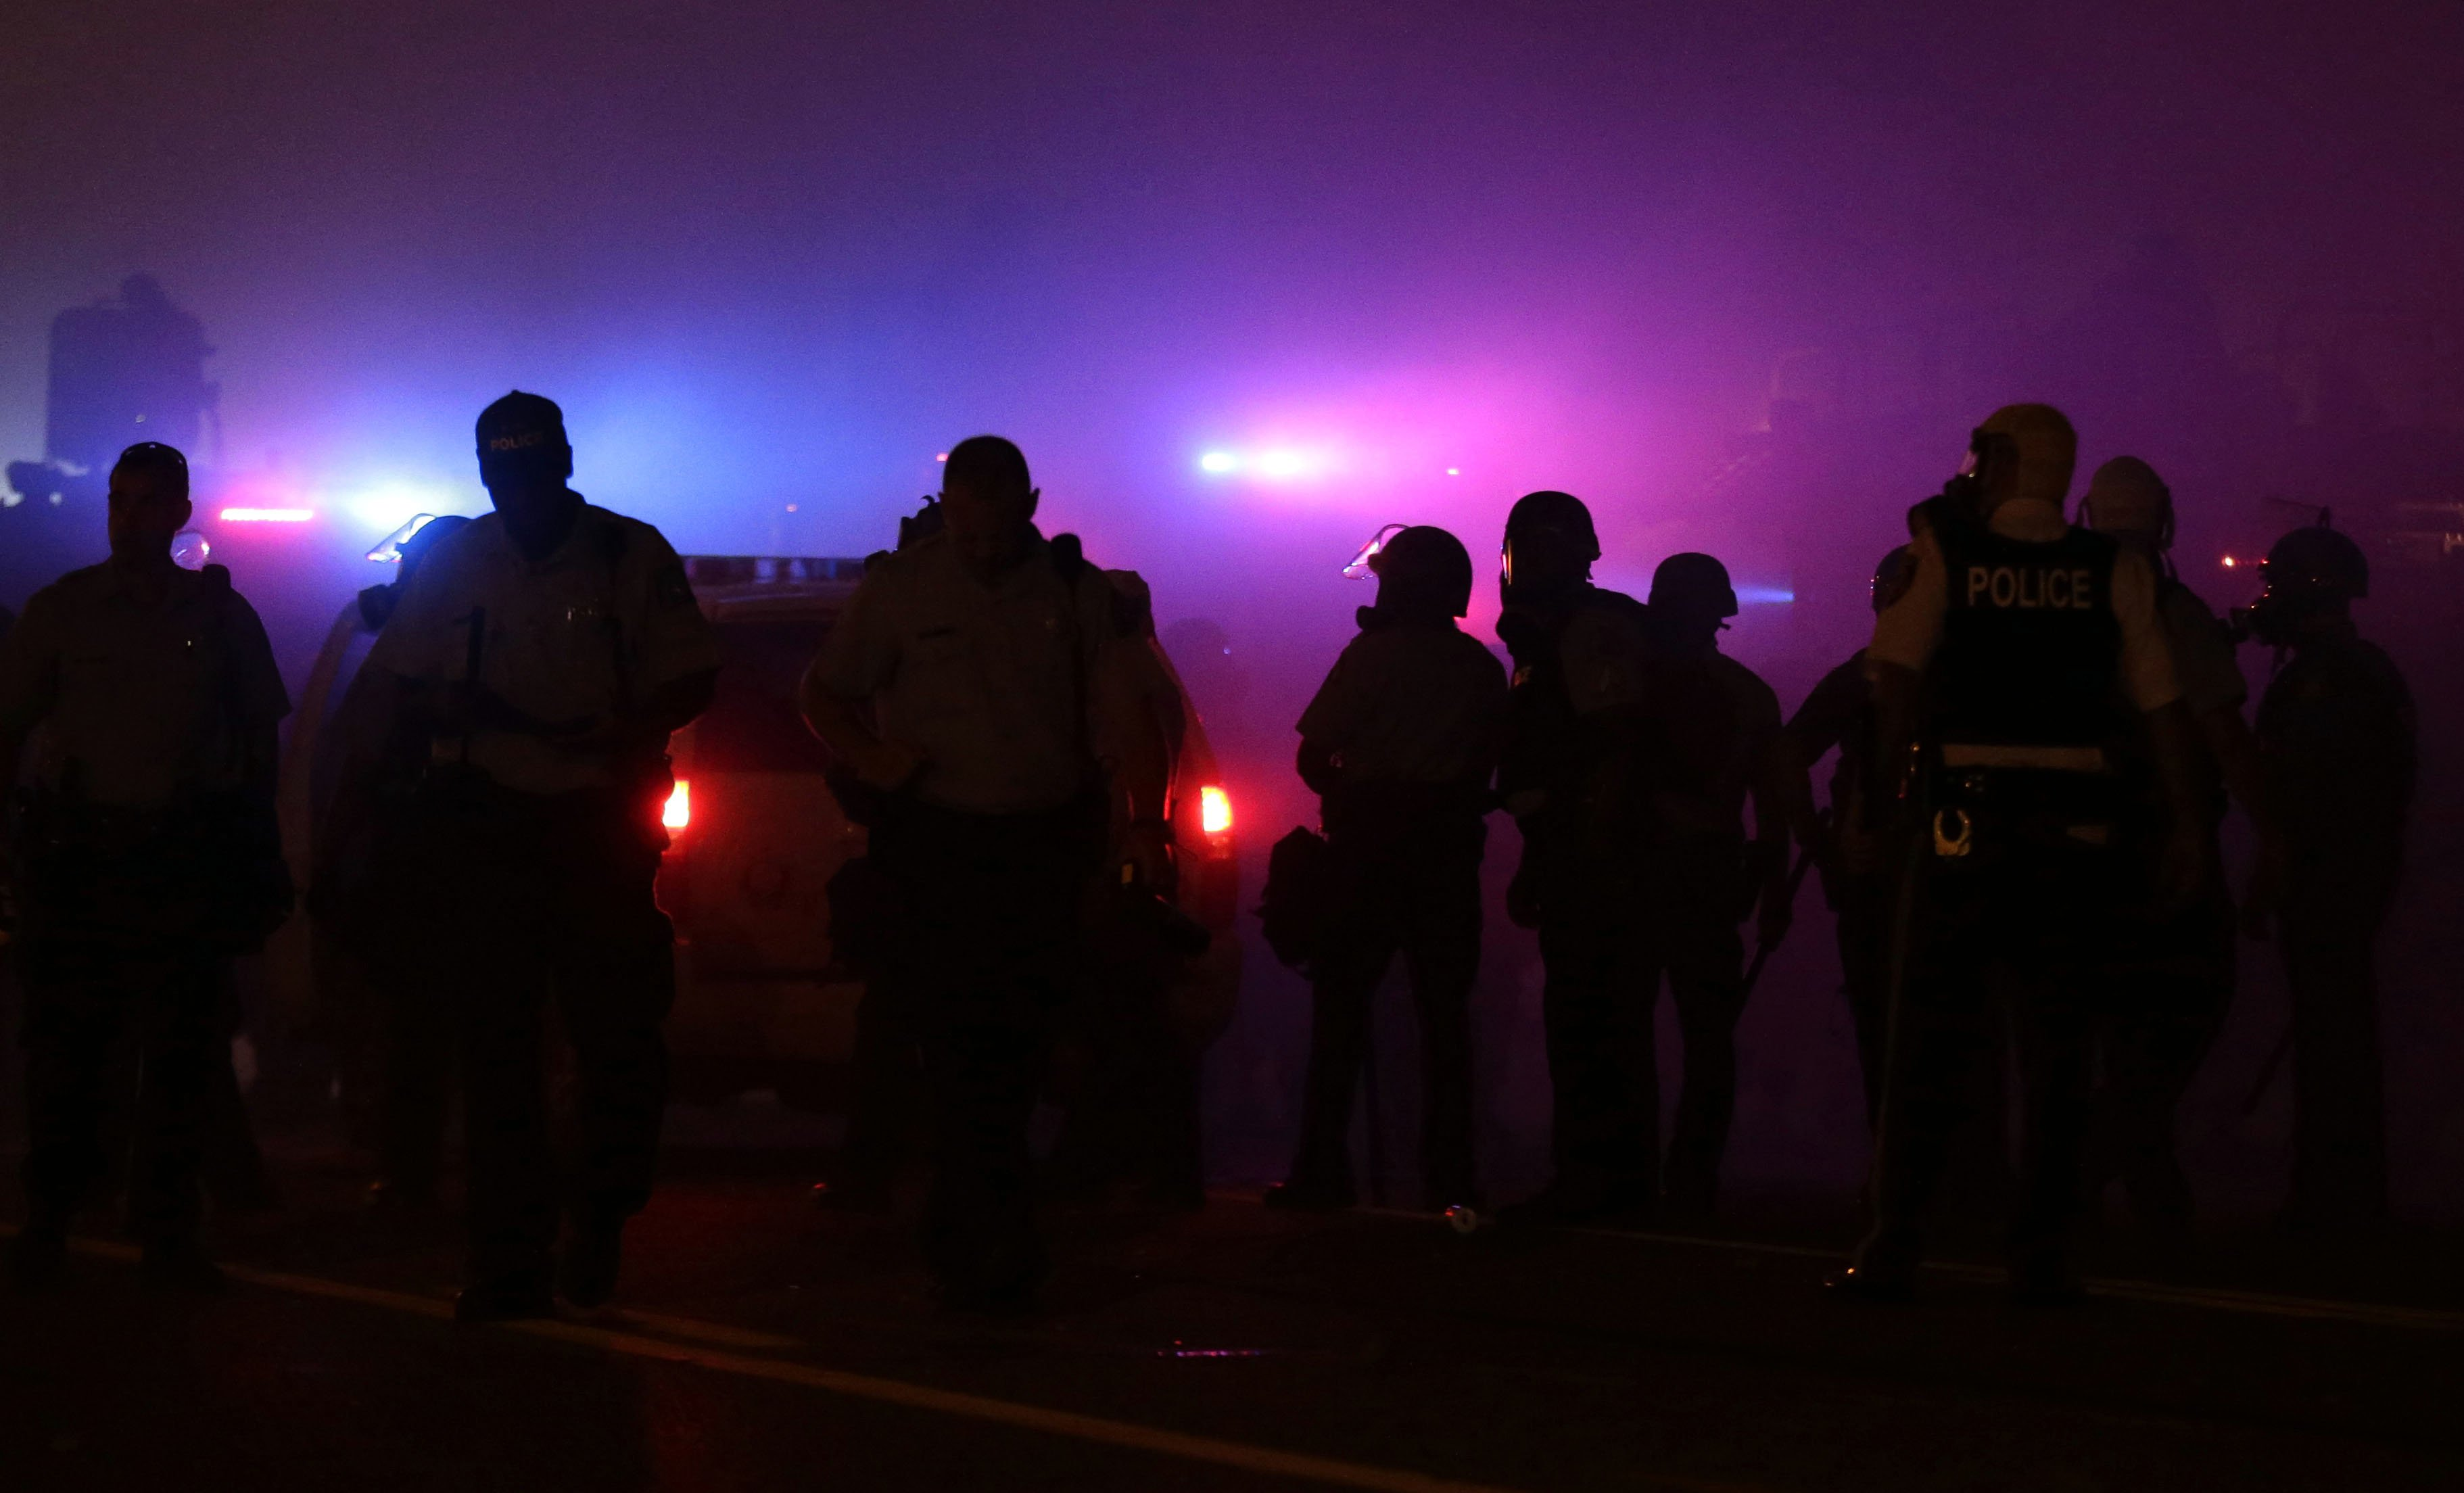 Police wait to advance after tear gas was used to dispersed a crowd in Ferguson, Mo. on Aug. 17, 2014.